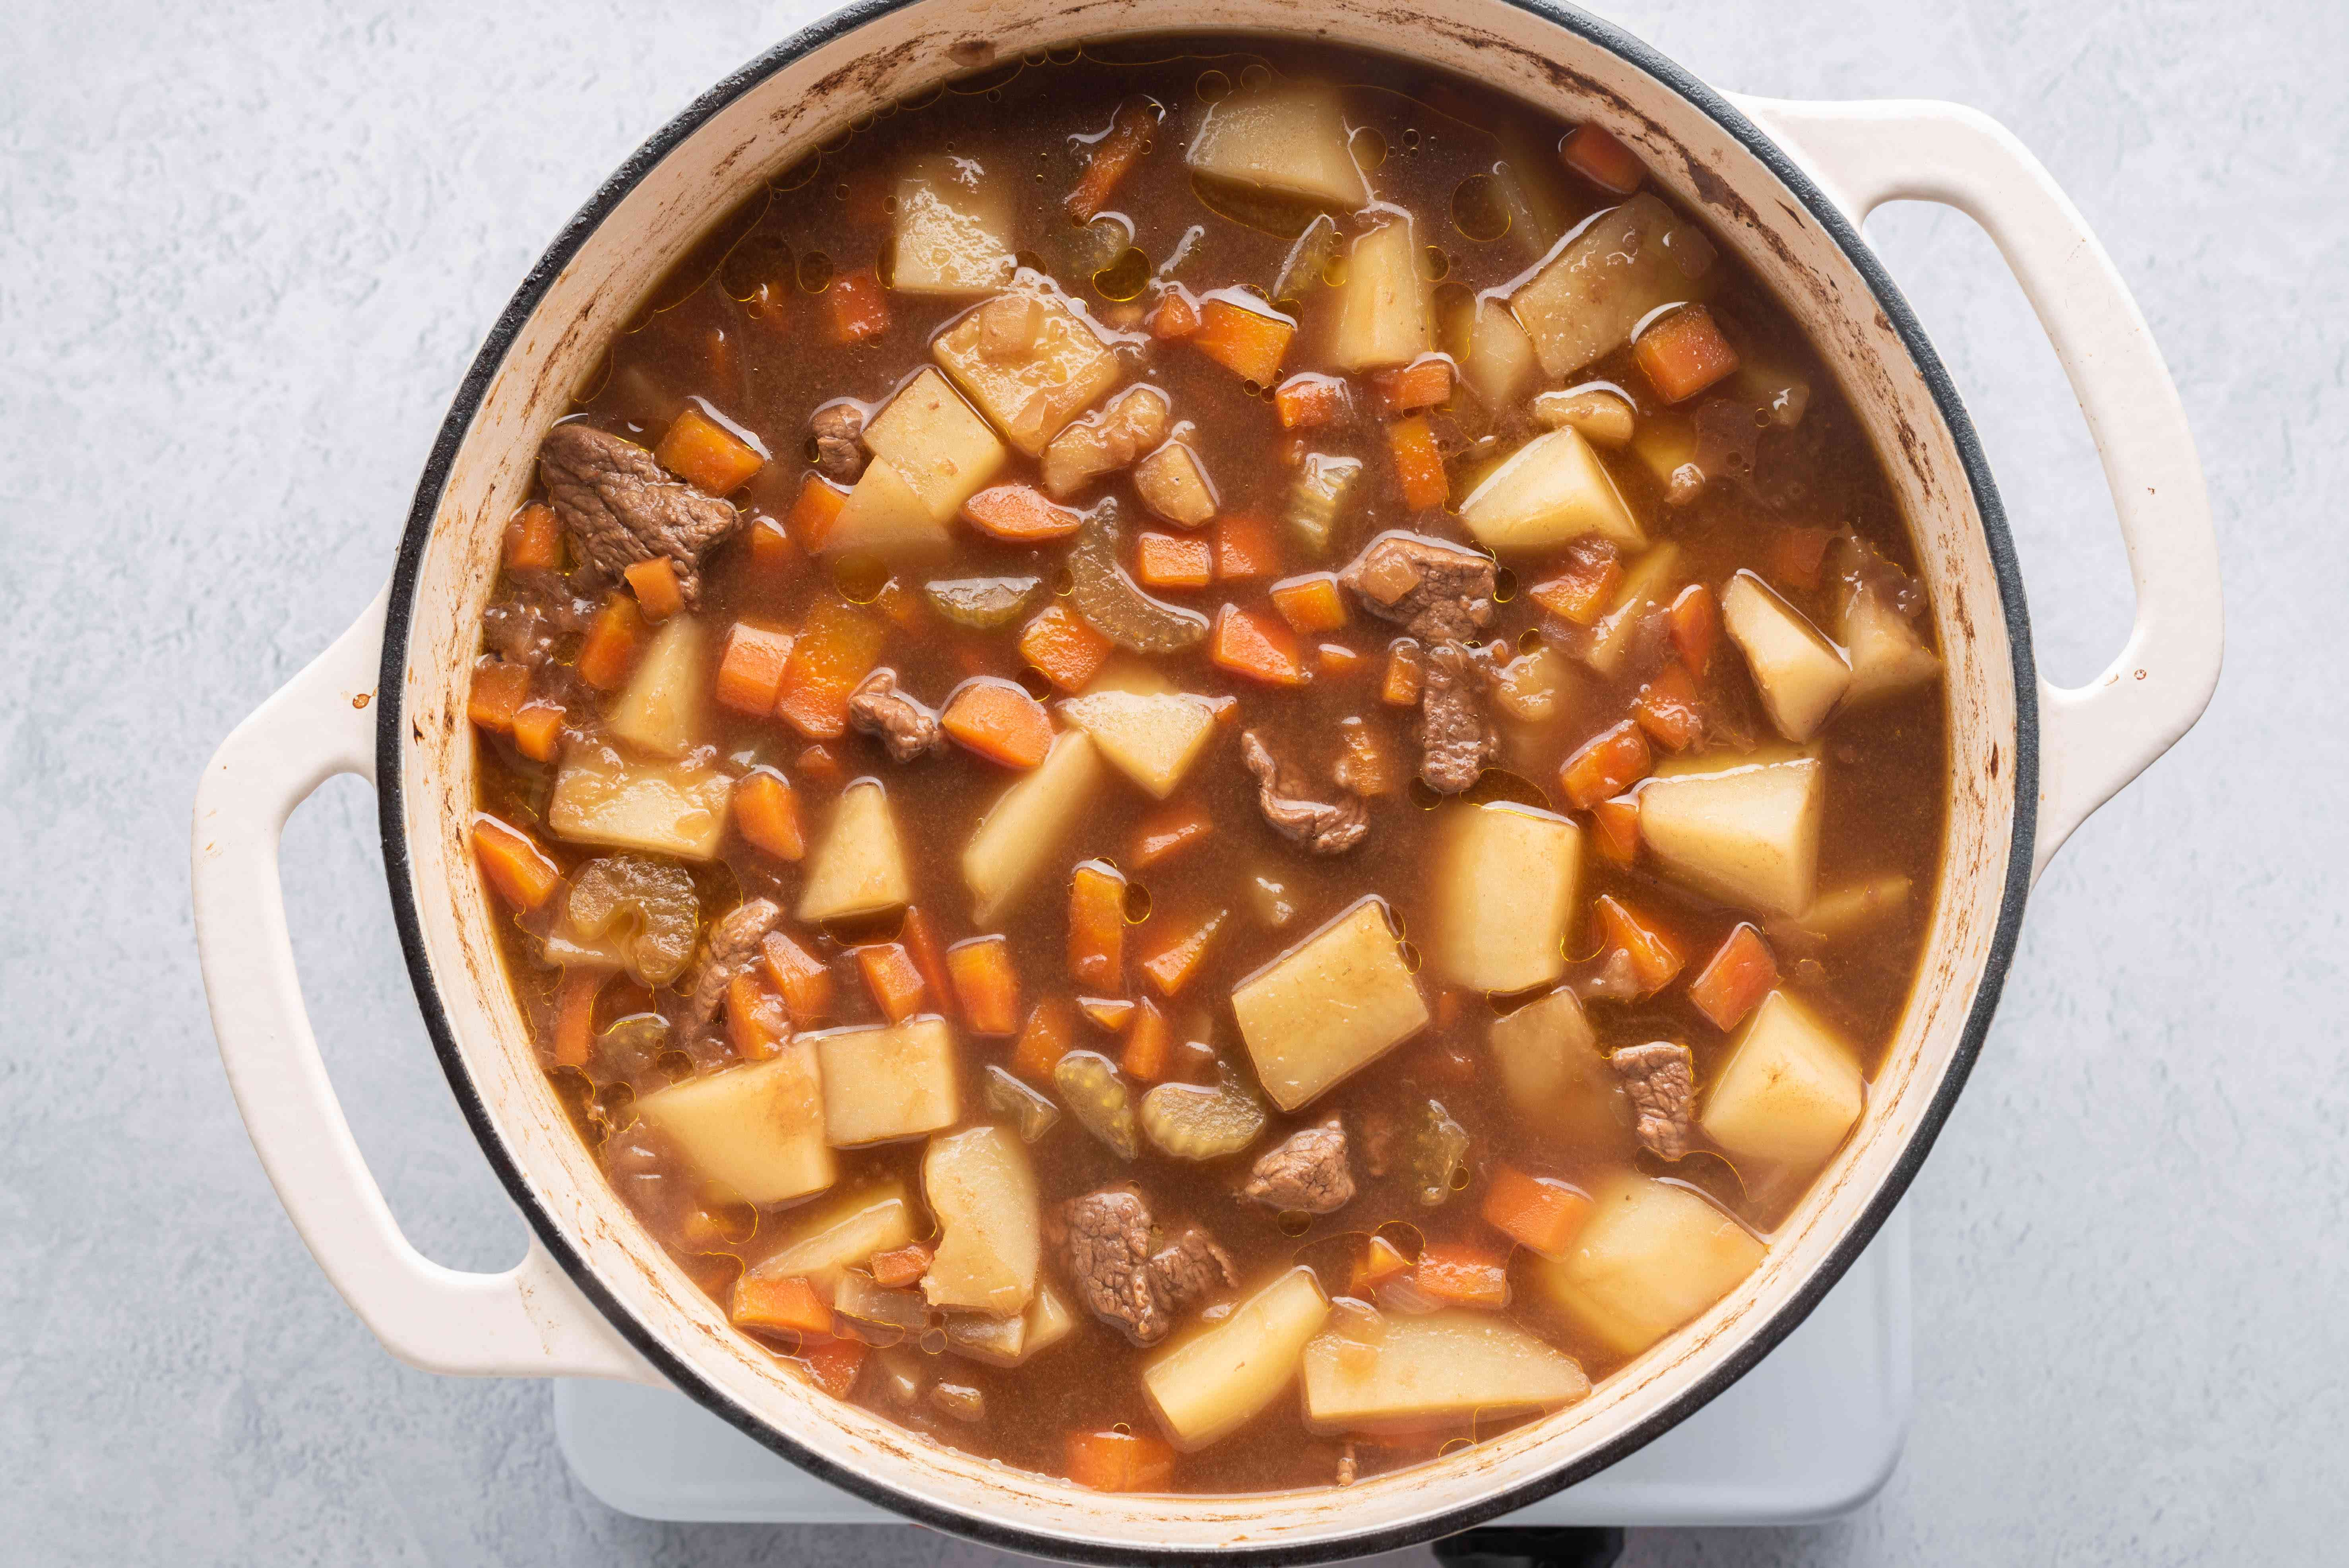 beef stew cooking in a Dutch oven